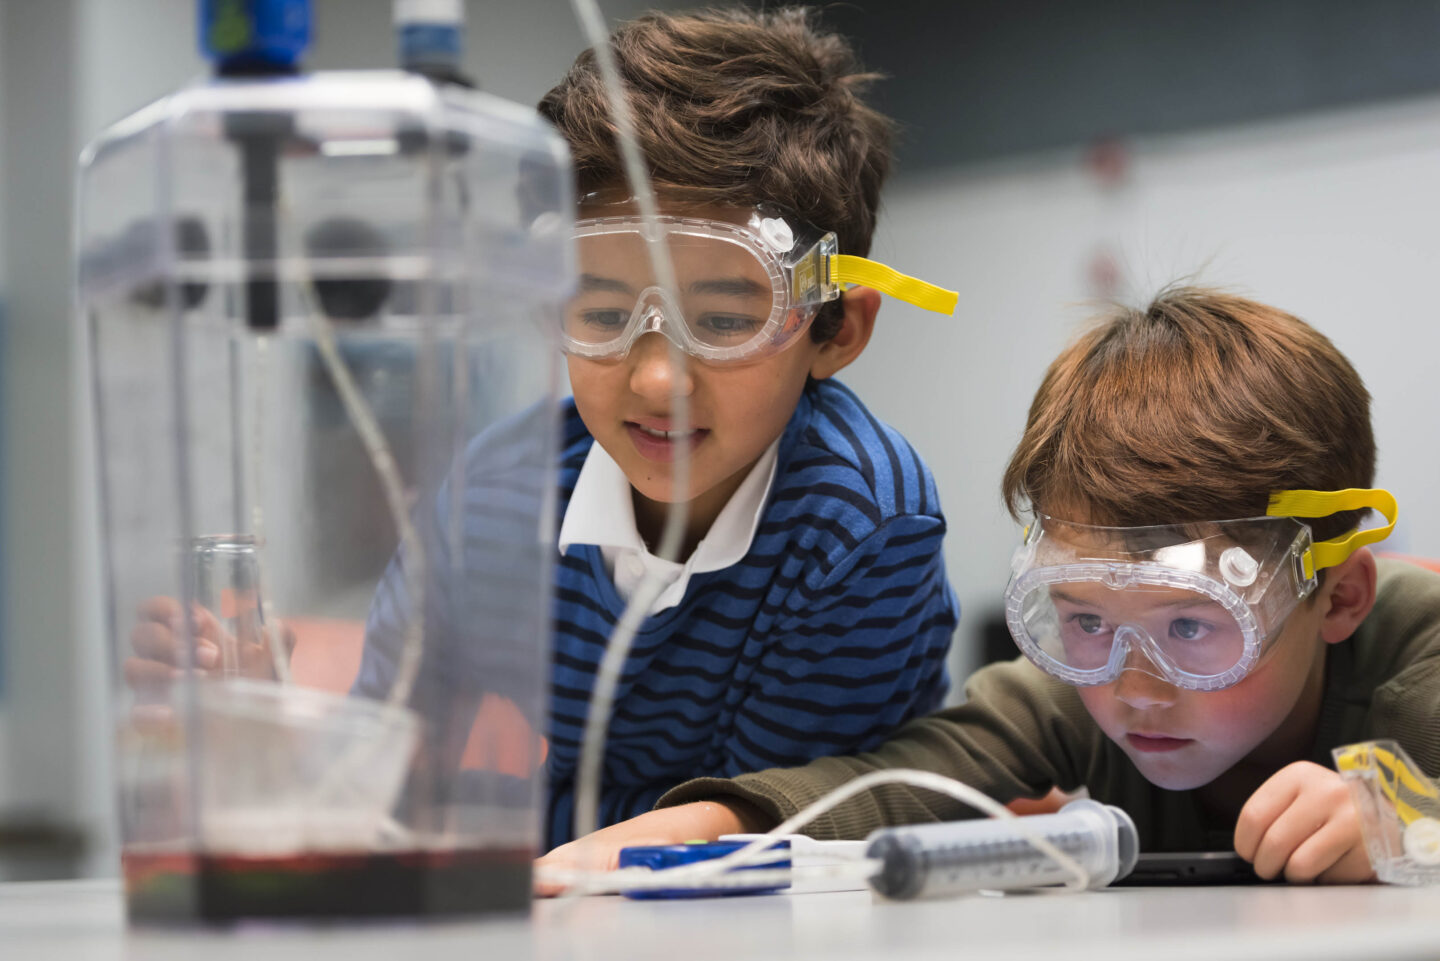 Two children wearing safety goggles examining their results in a science experiment